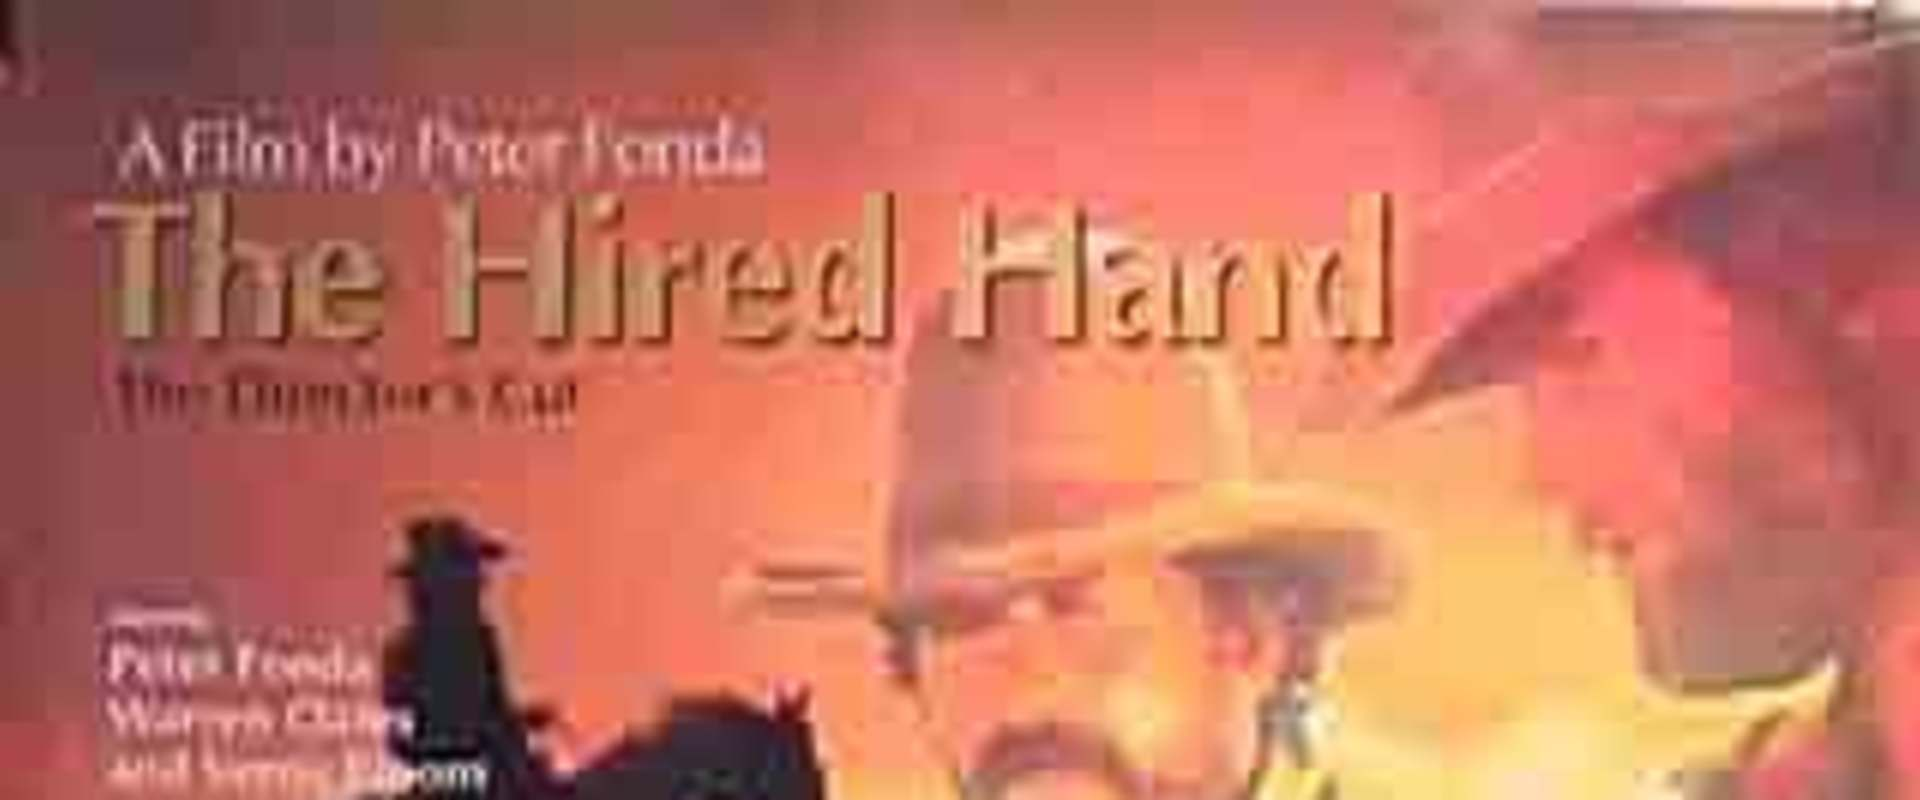 The Hired Hand background 1